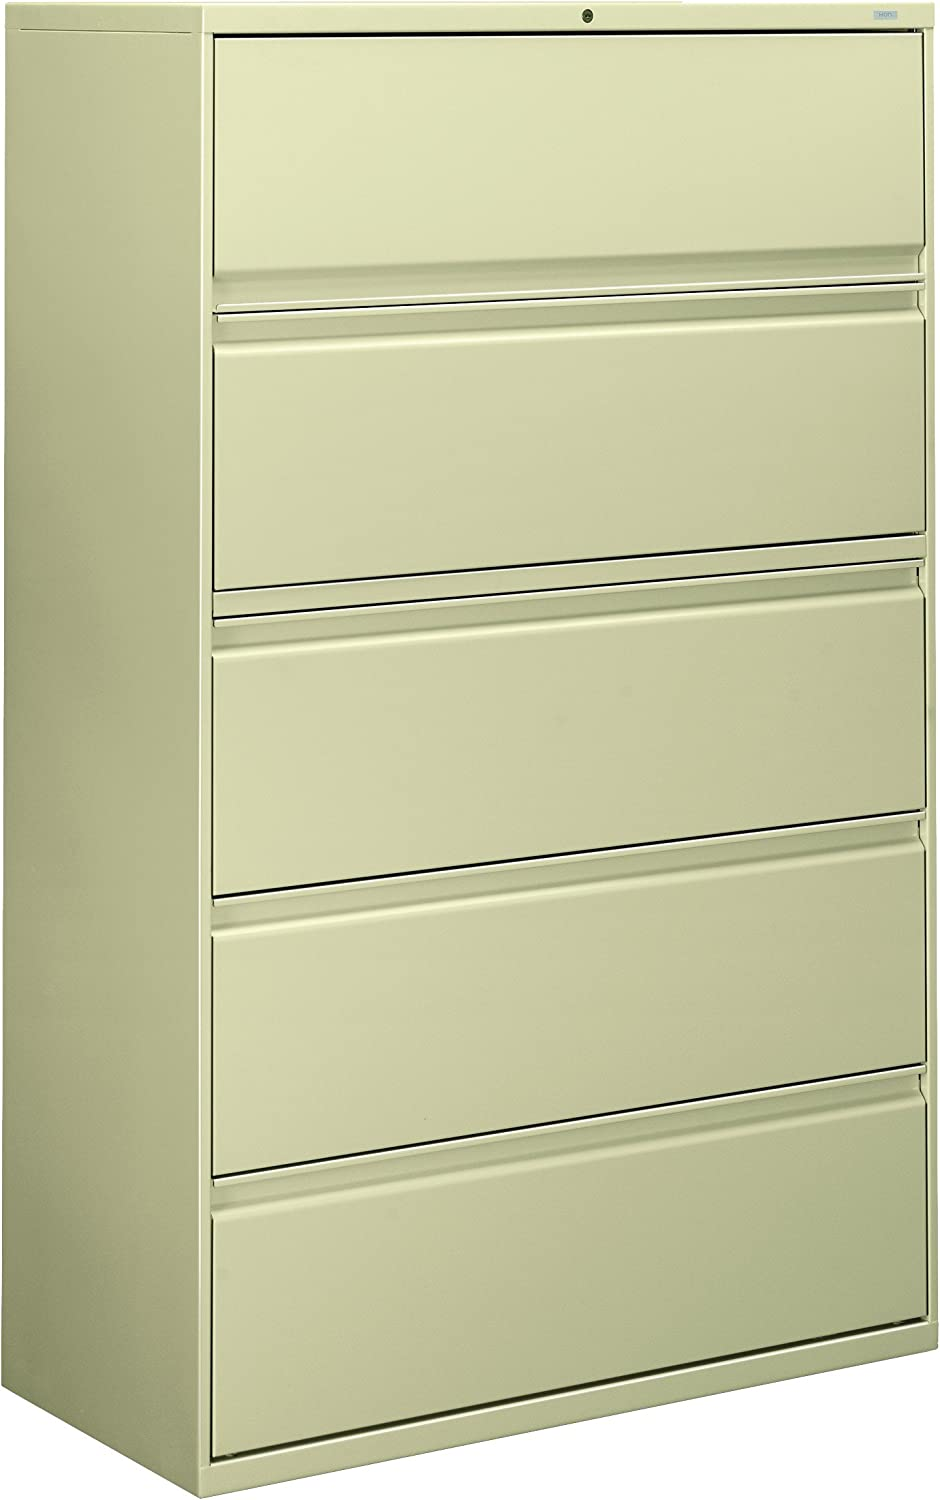 HON 895LL 800 Series Five-Drawer Lateral File, Roll-Out/Posting Shelves, 42w x 67h, Putty